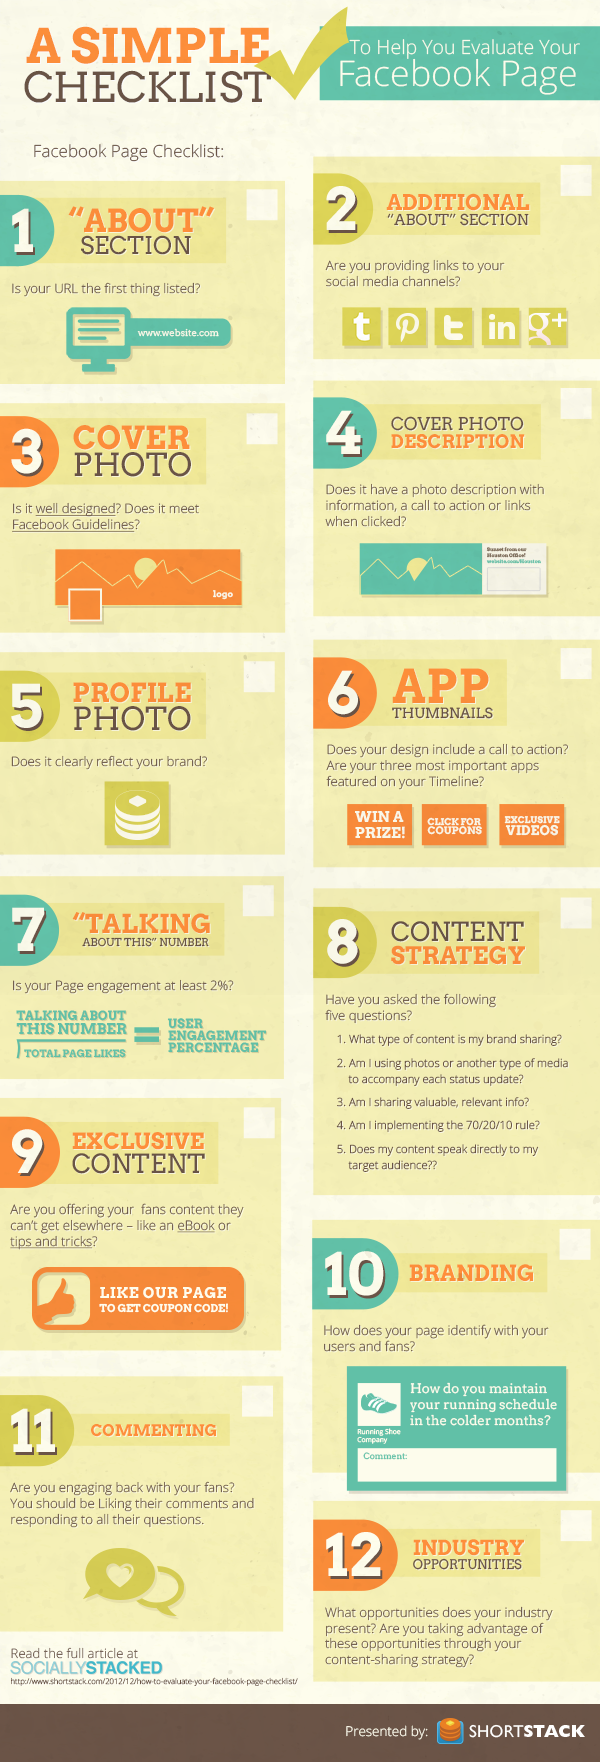 facebook simple checklist infographic